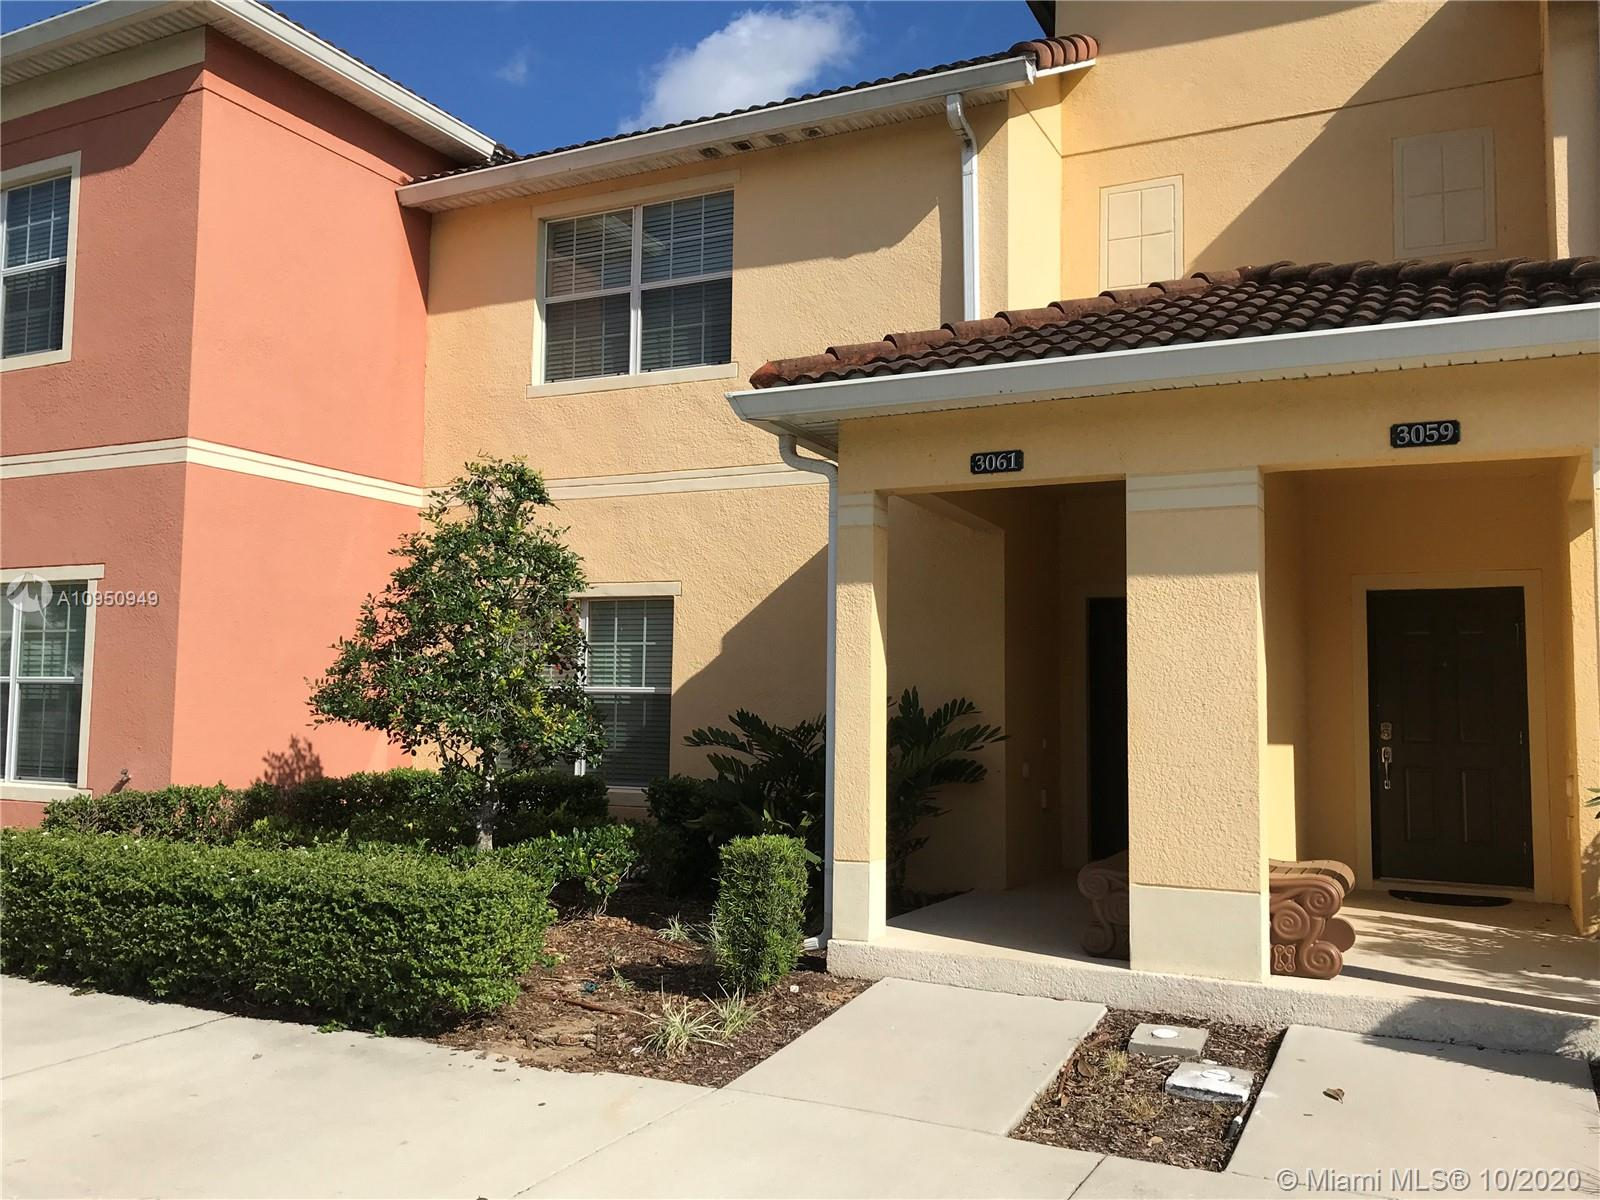 Details for 3061 Beach Palm Ave  3061, Kissimmee, FL 34747